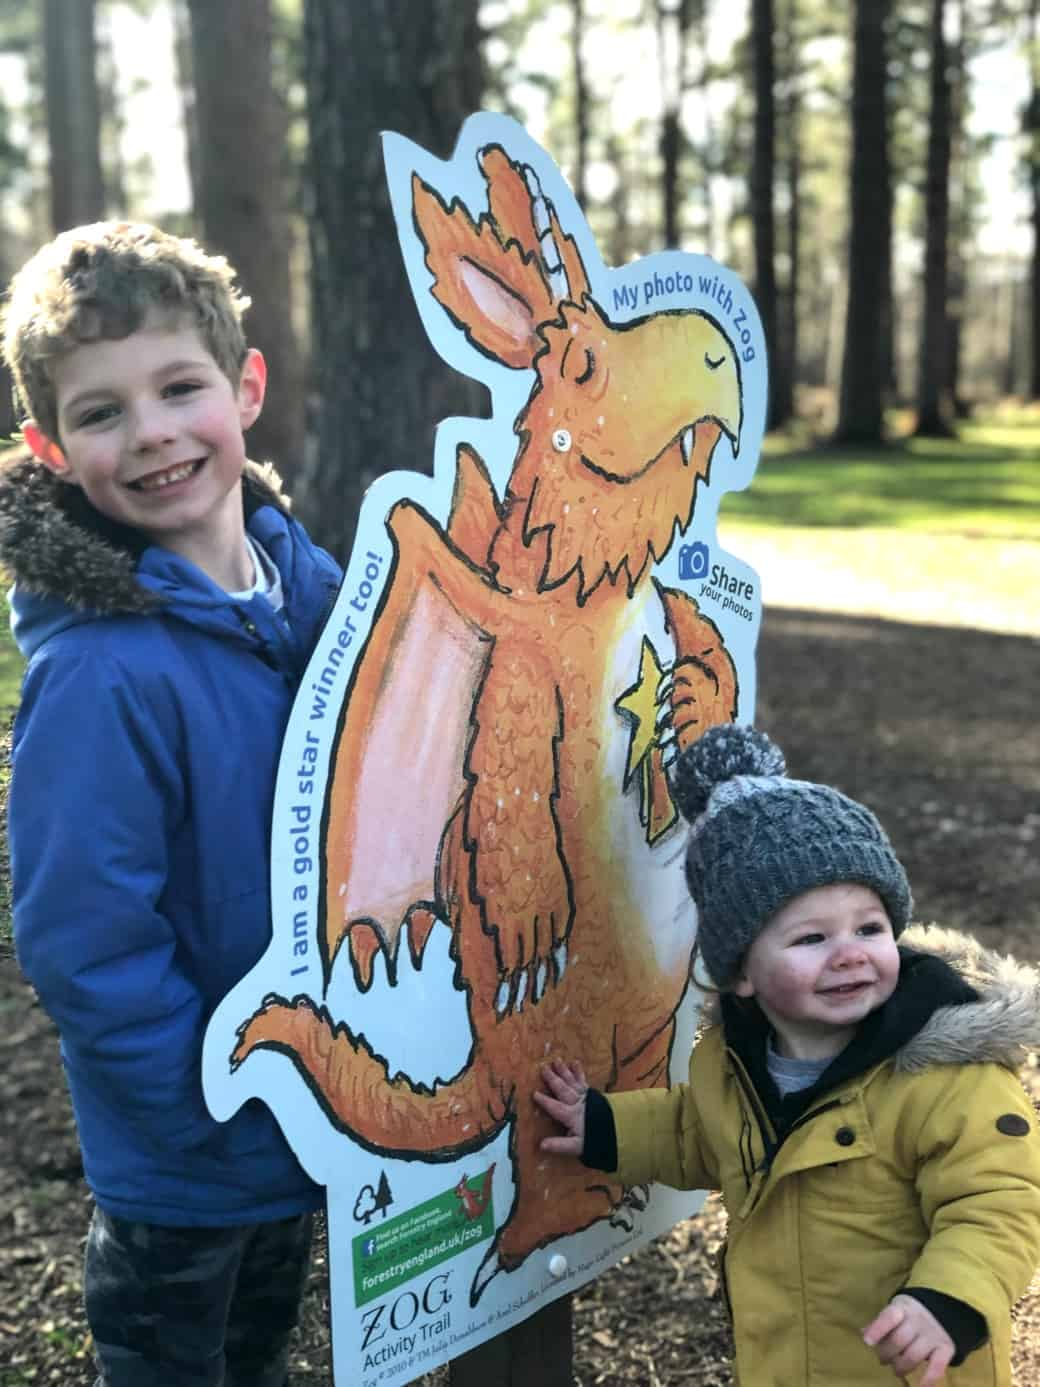 Zog Trail Cannock Chase